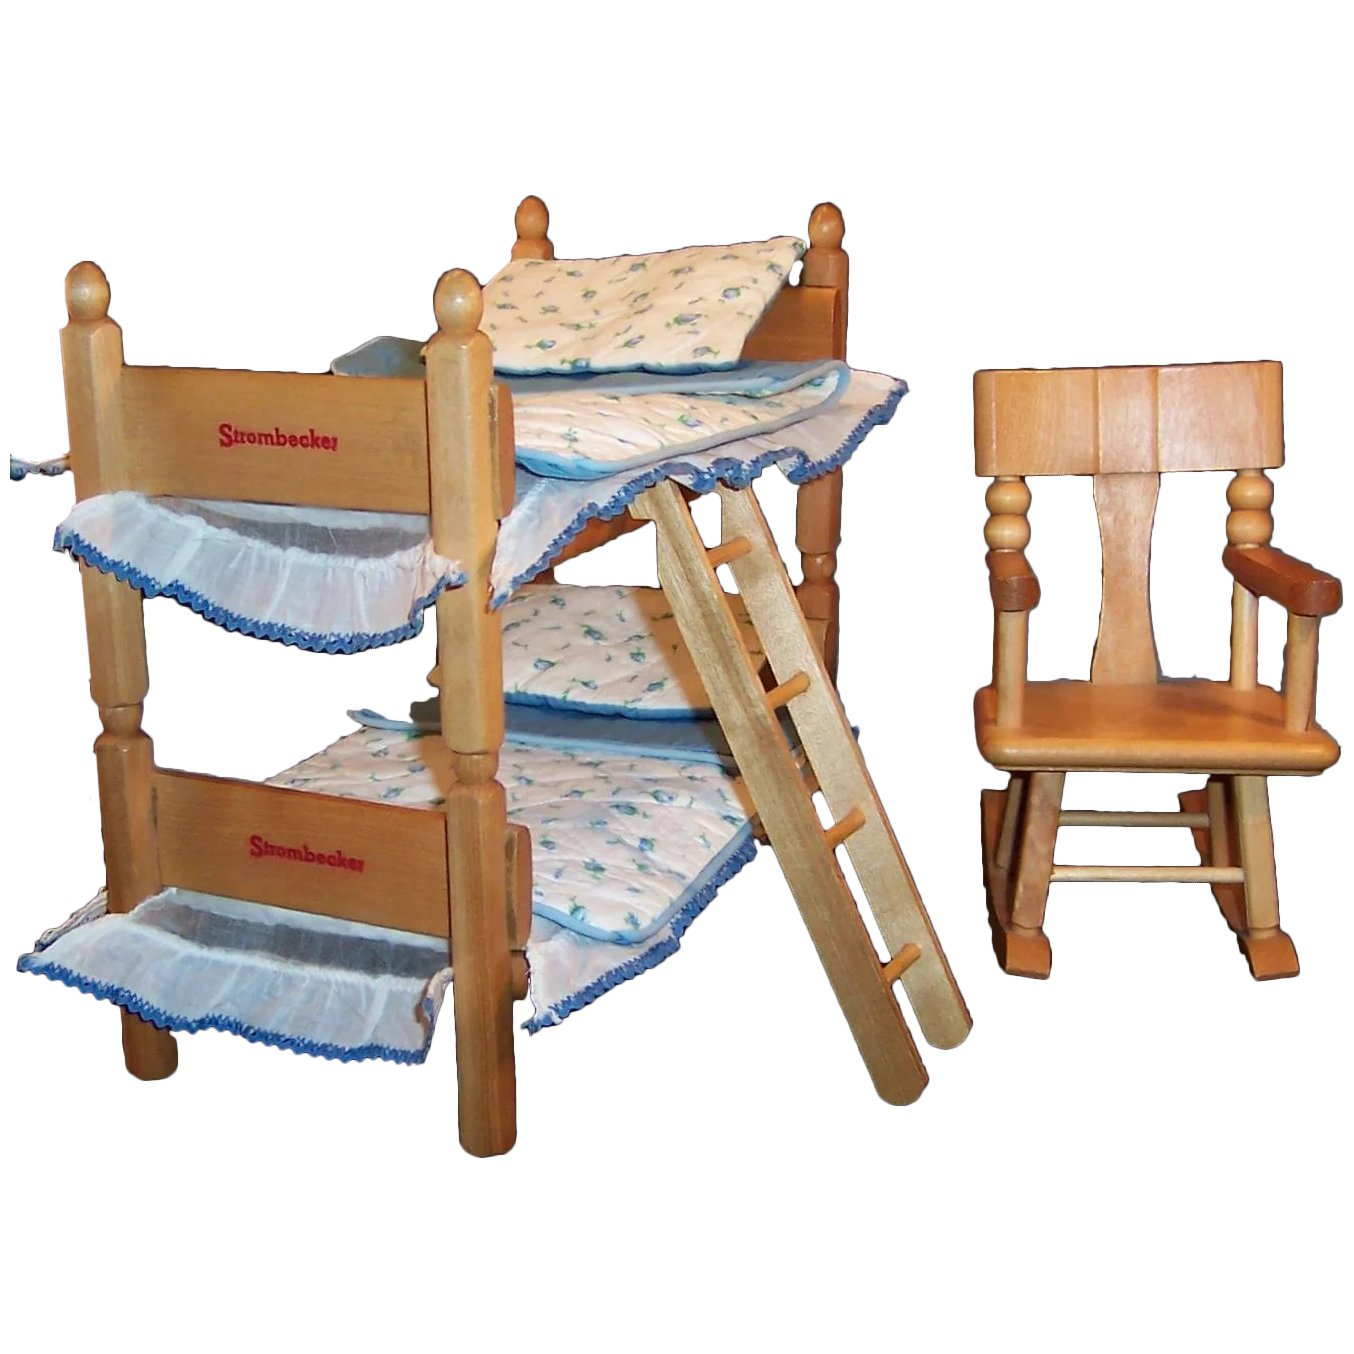 Astounding 1950S Strombecker Bunk Twin Beds Bedding Ladder Rocking Chair For 8 Dolls Andrewgaddart Wooden Chair Designs For Living Room Andrewgaddartcom